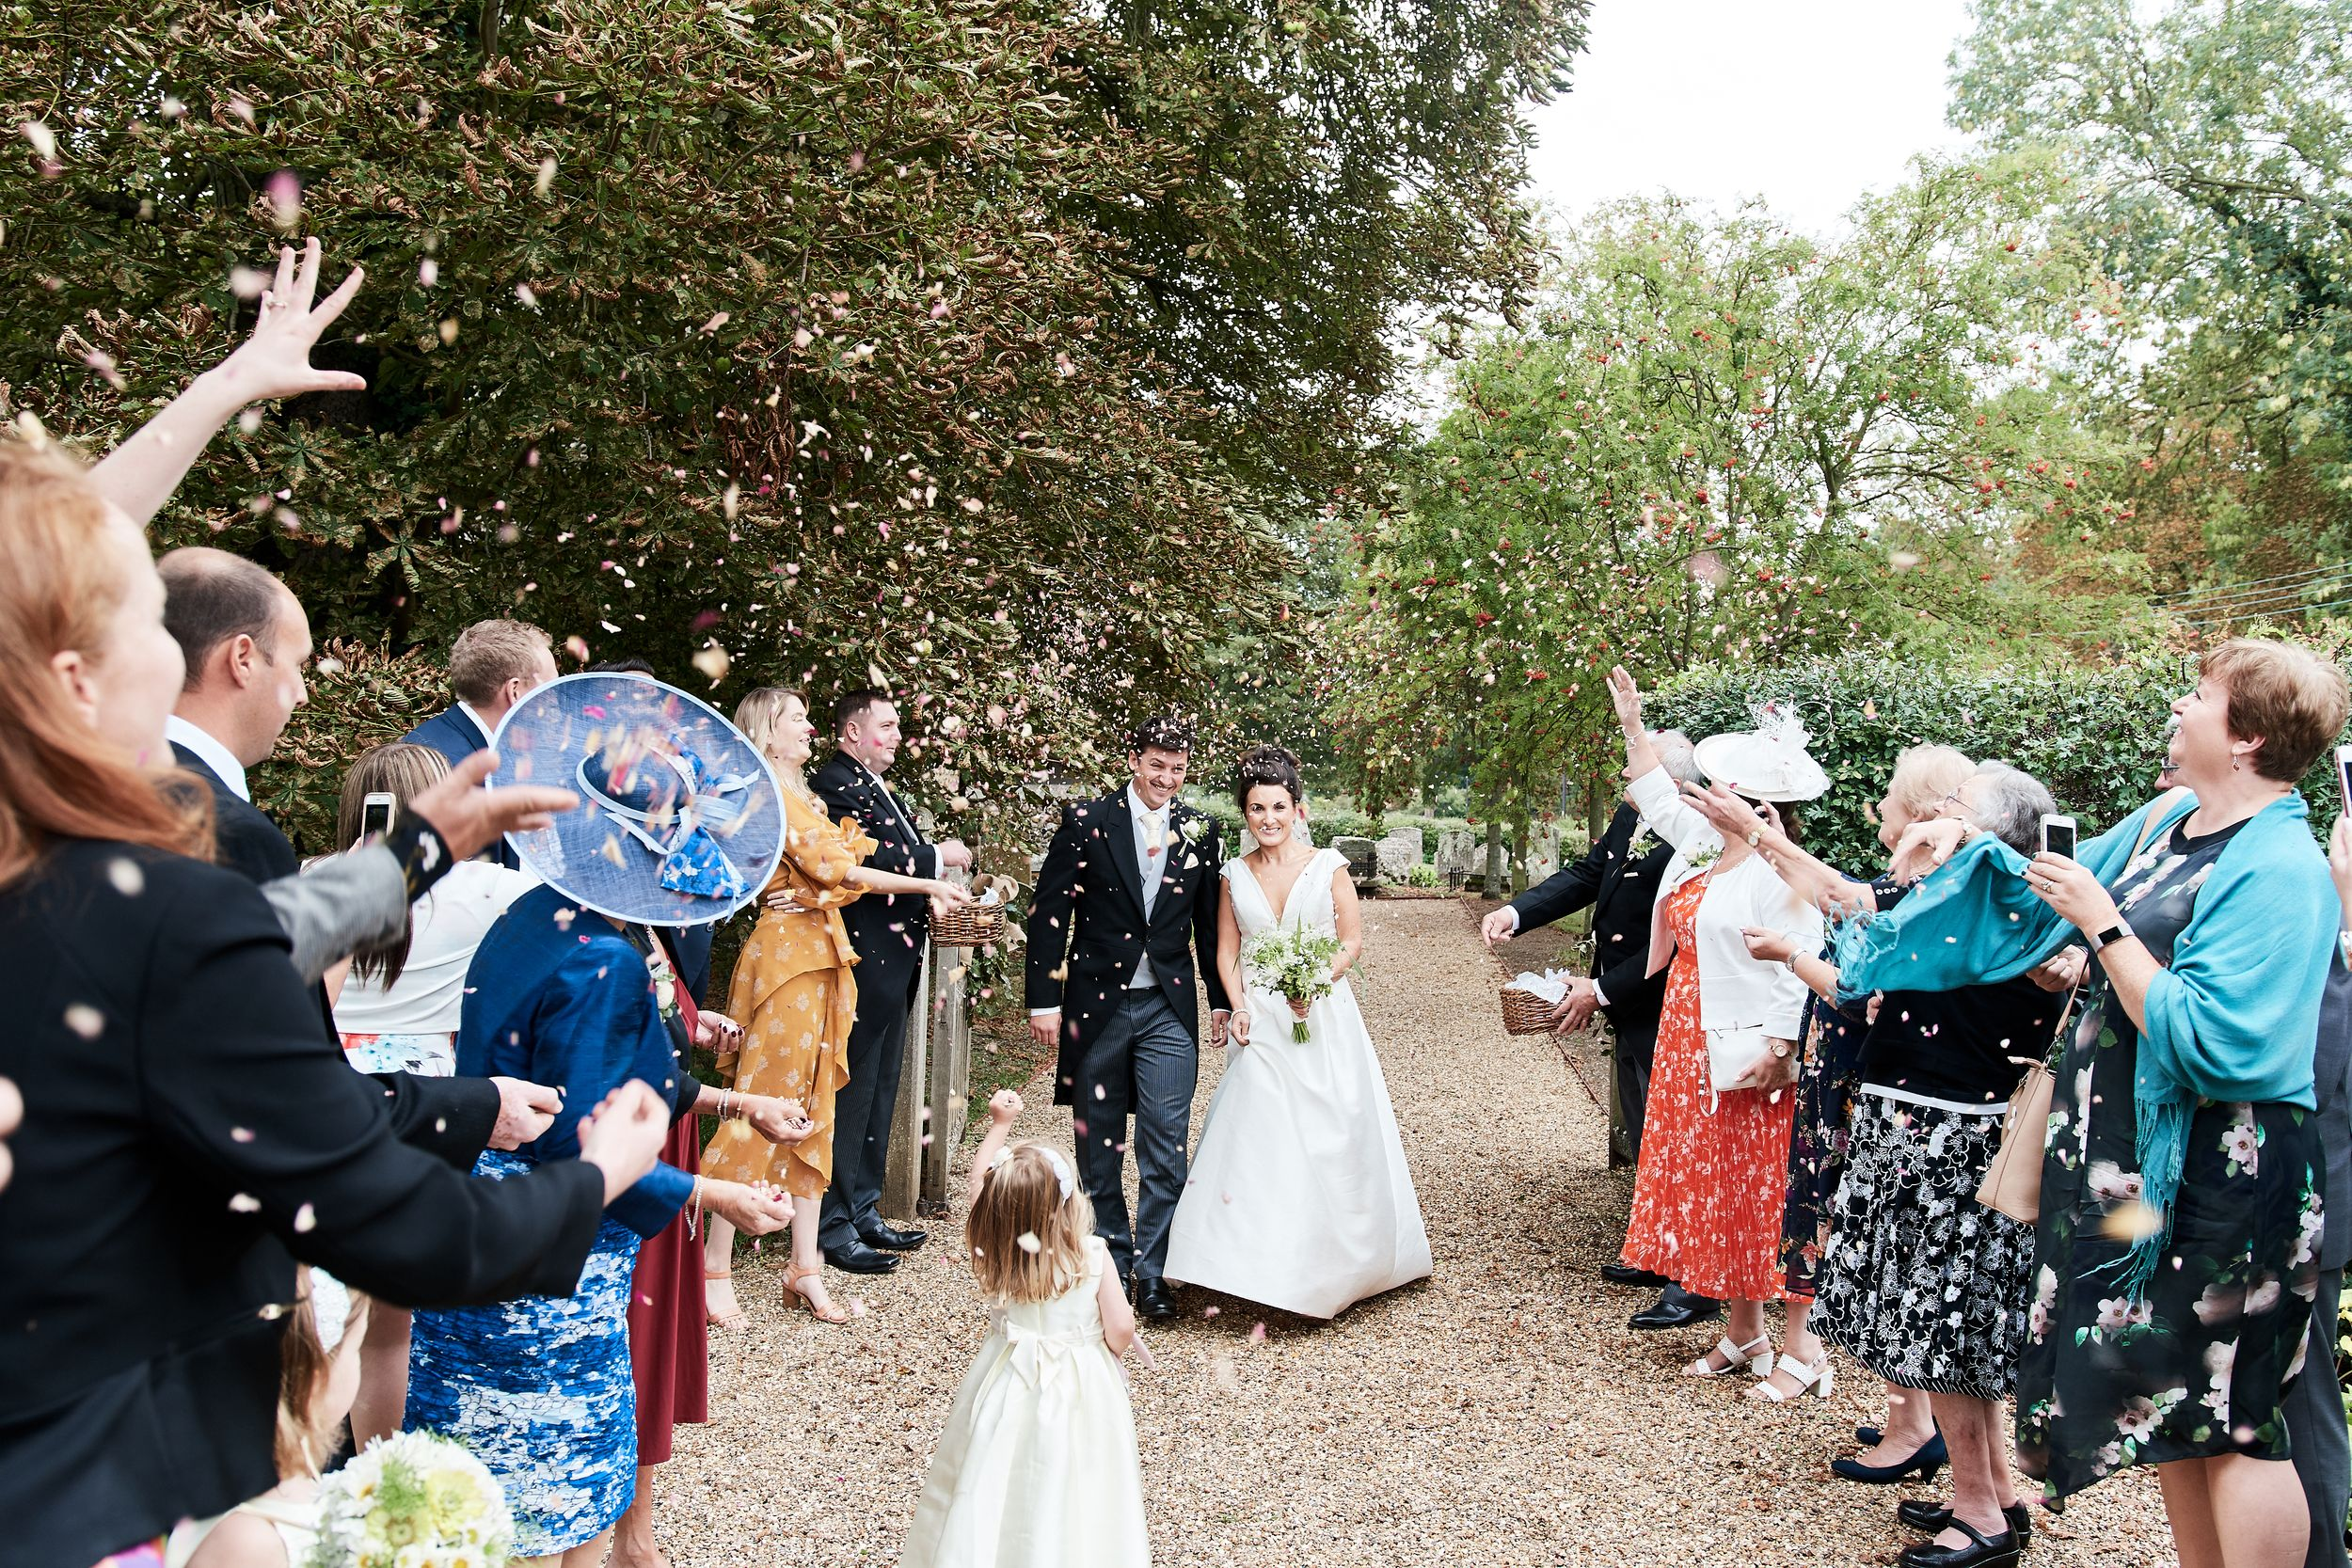 wedding guests throw confetti over the bride and groom at The Garden Barn in Suffolk. by Suffolk wedding photographer